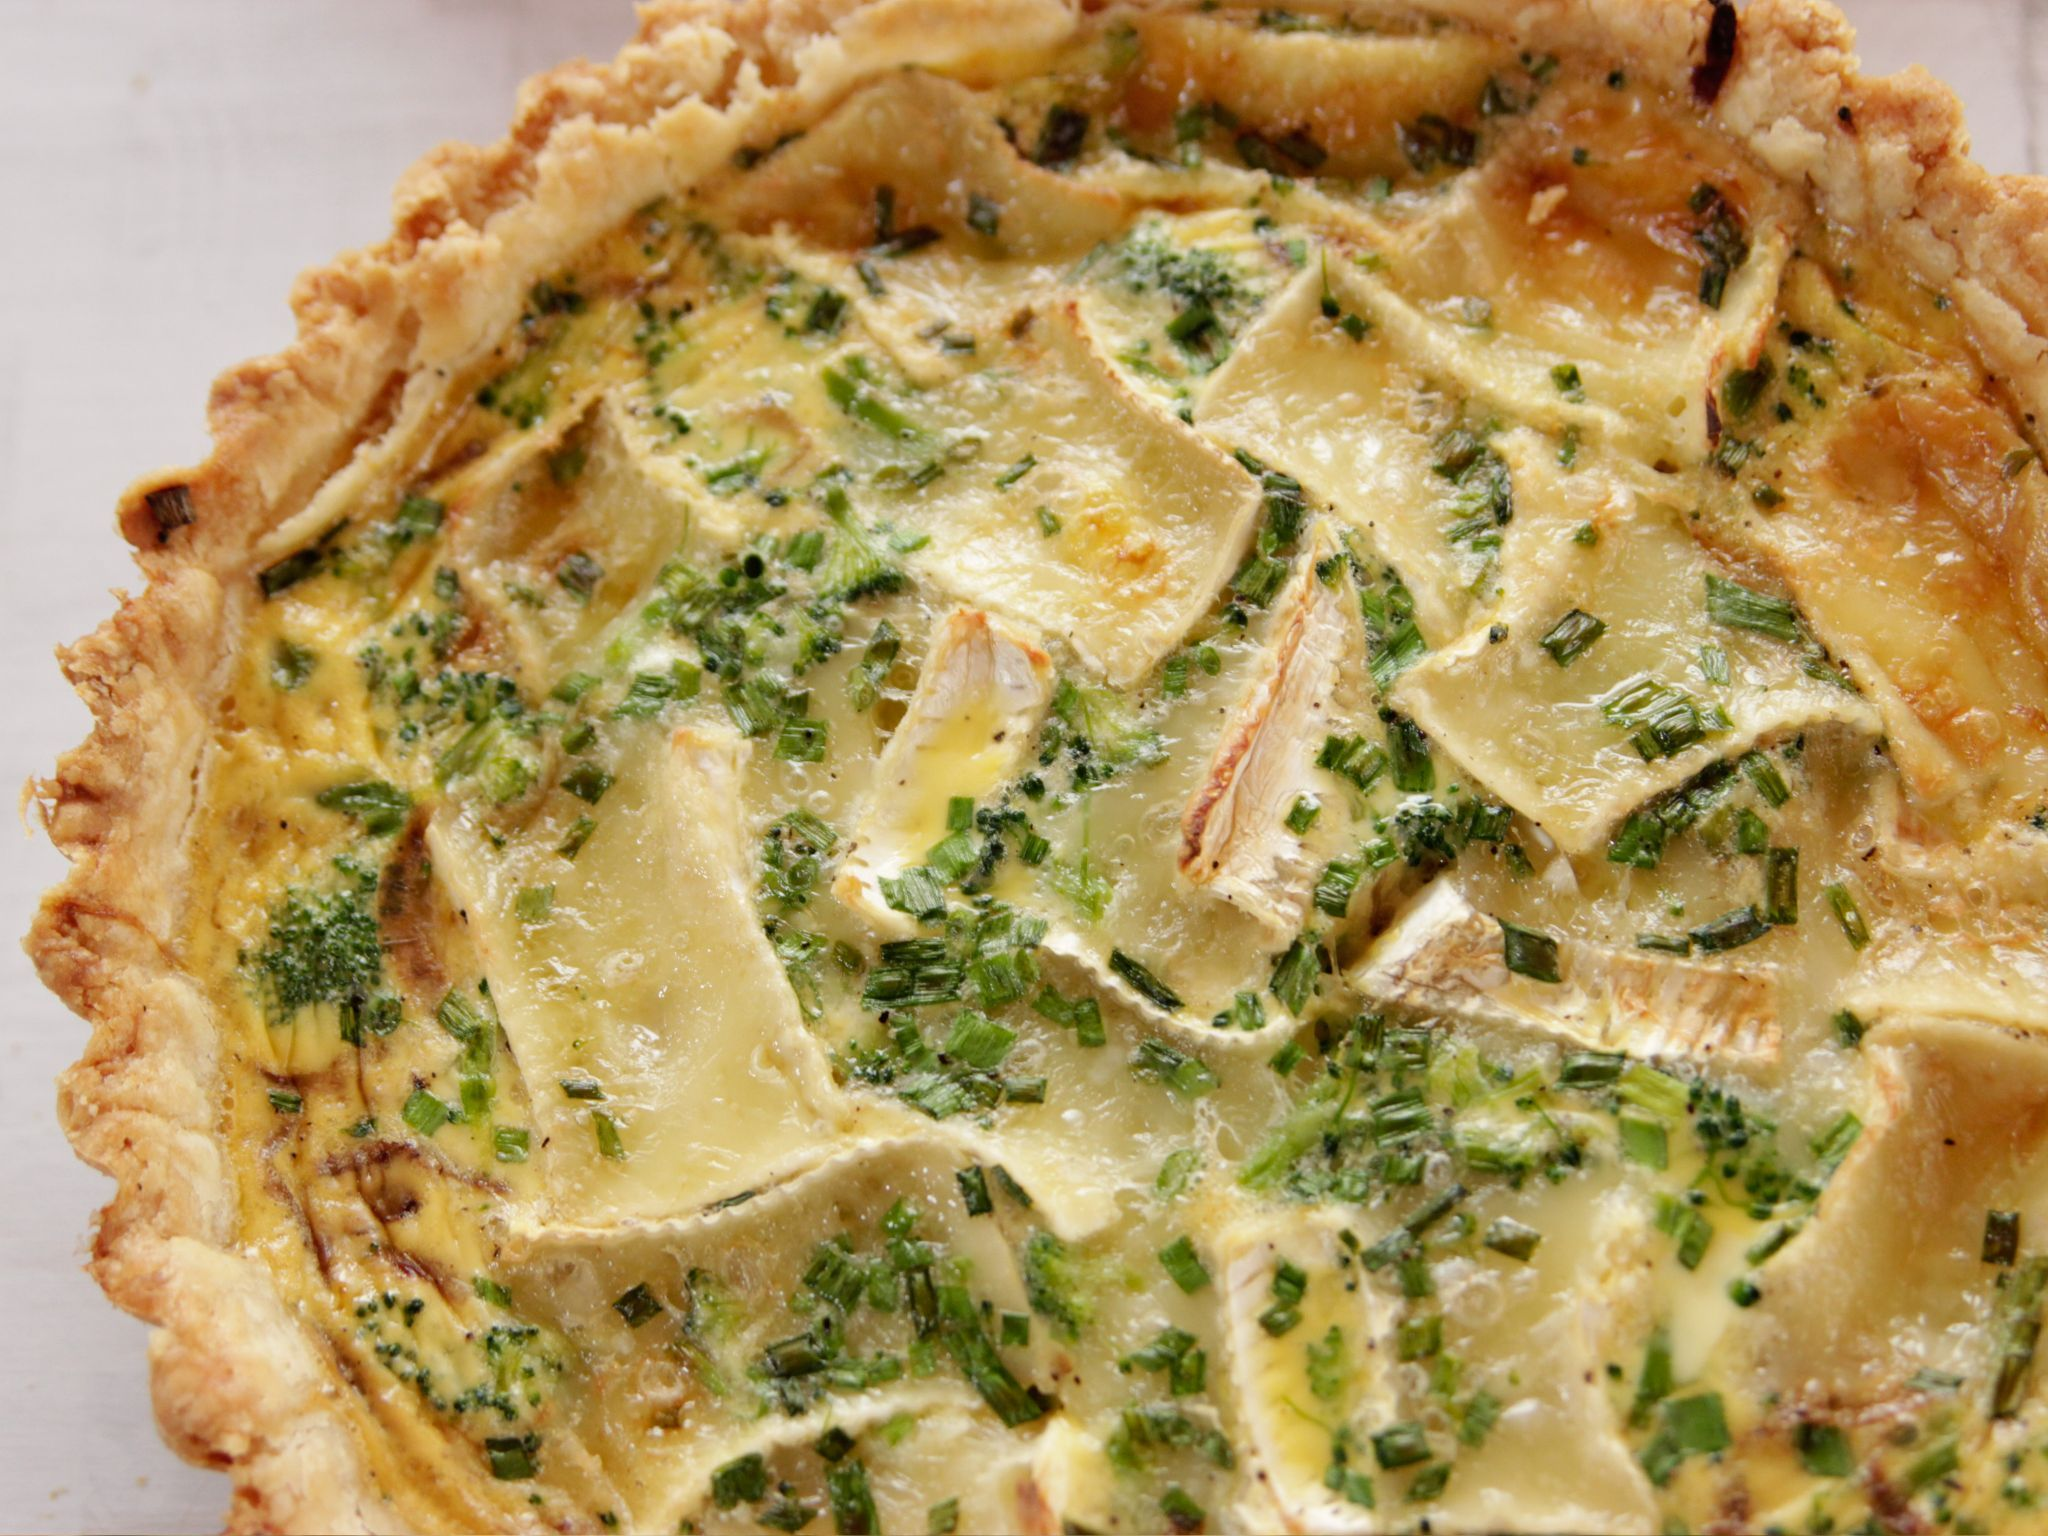 Brie and broccoli quiche recipe quiche recipes quiche and brie brie and broccoli quiche forumfinder